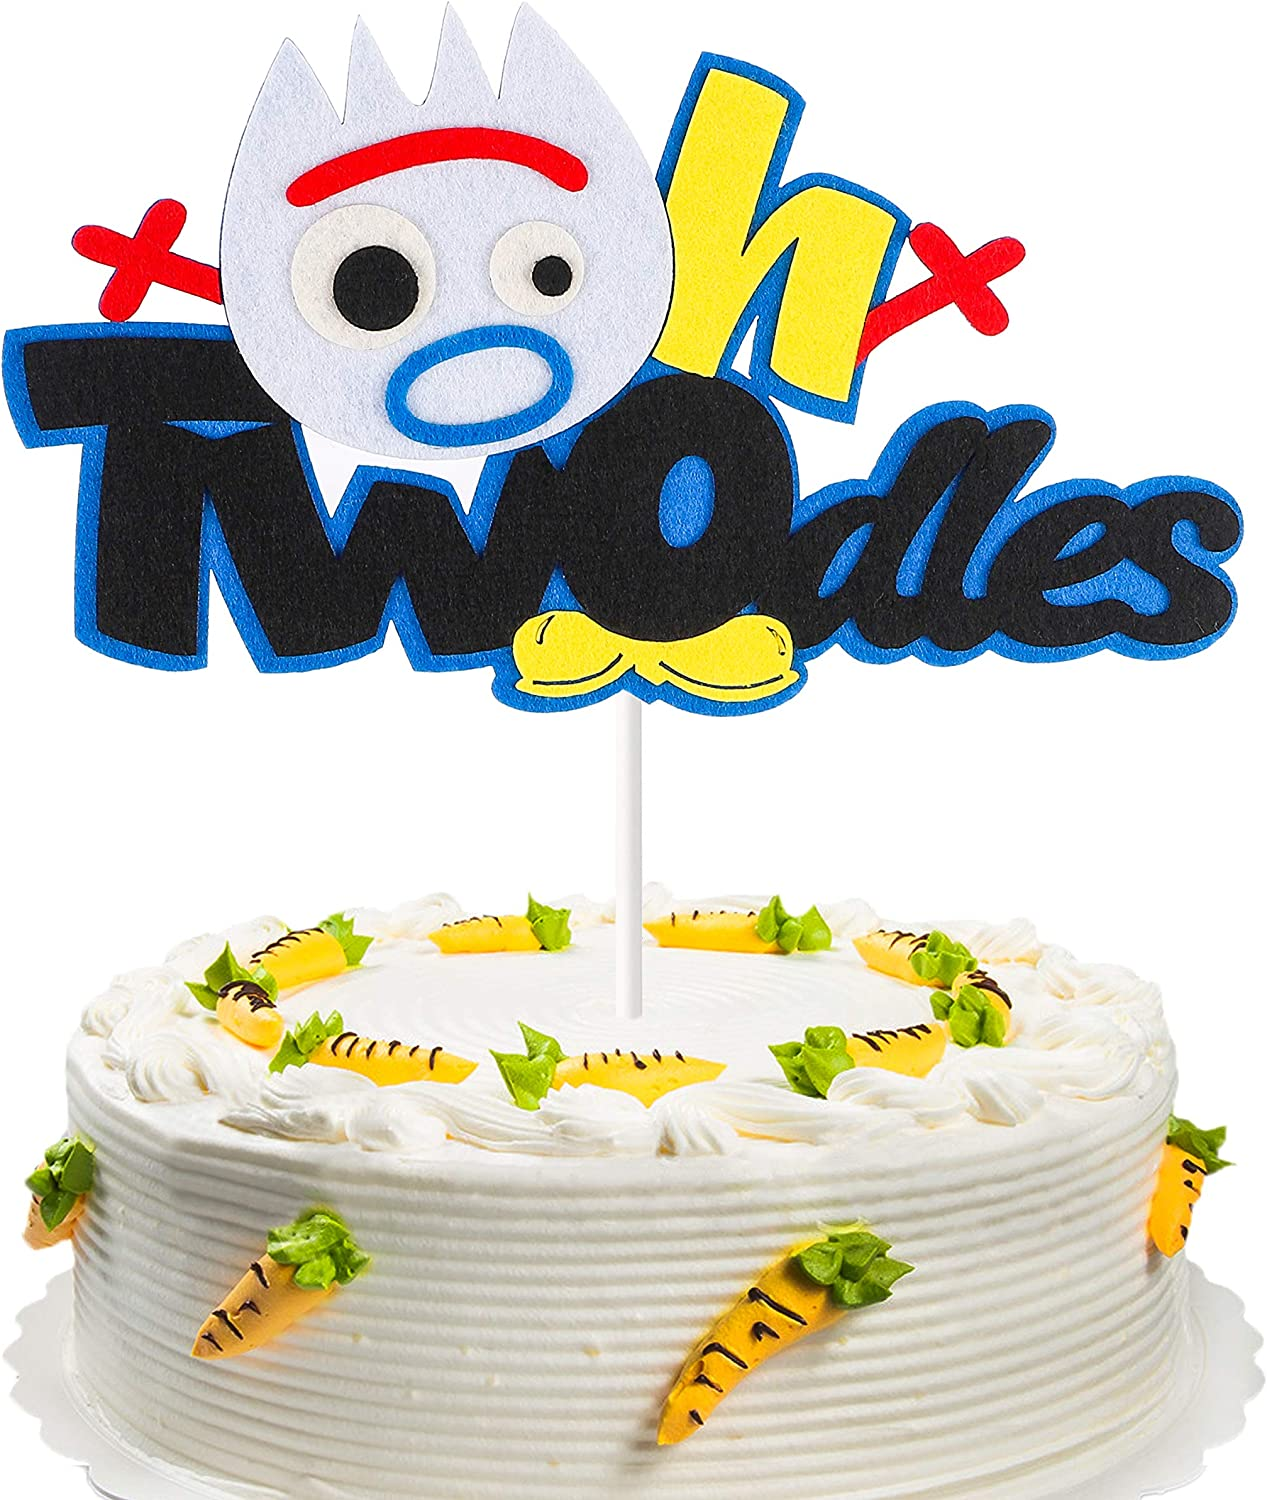 Awesome Amazon Com Mallmall6 Fork 2Nd Birthday Cake Topper Toy 4Th Themed Funny Birthday Cards Online Alyptdamsfinfo